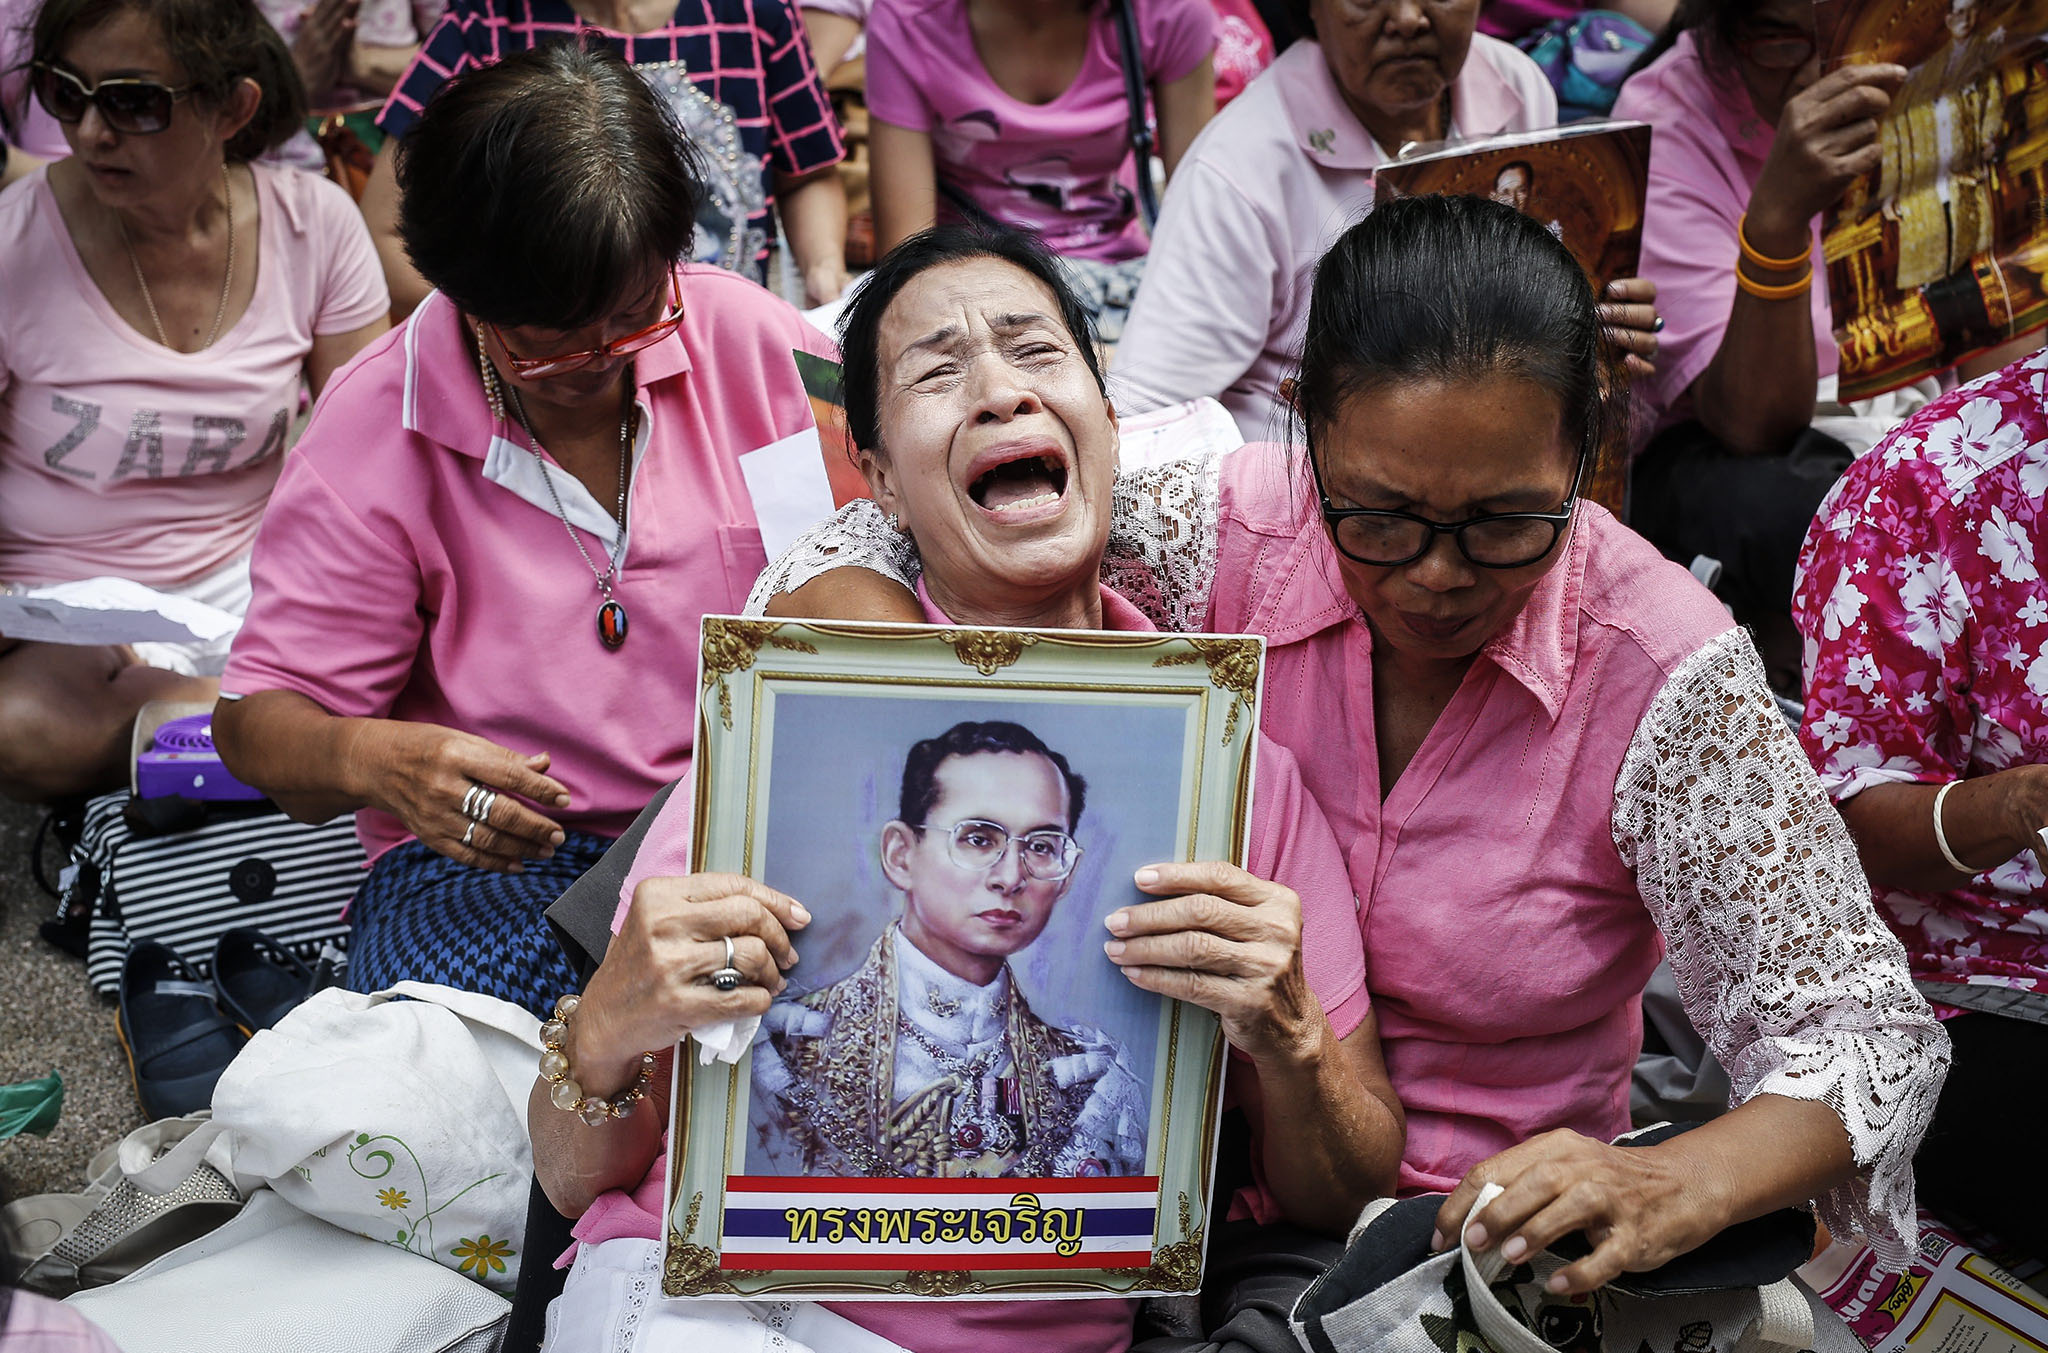 A Thai well-wisher weeps as she is comforted by others during a prayer for Thai King Bhumibol Adulyadej's recovery at the Siriraj Hospital in Bangkok,